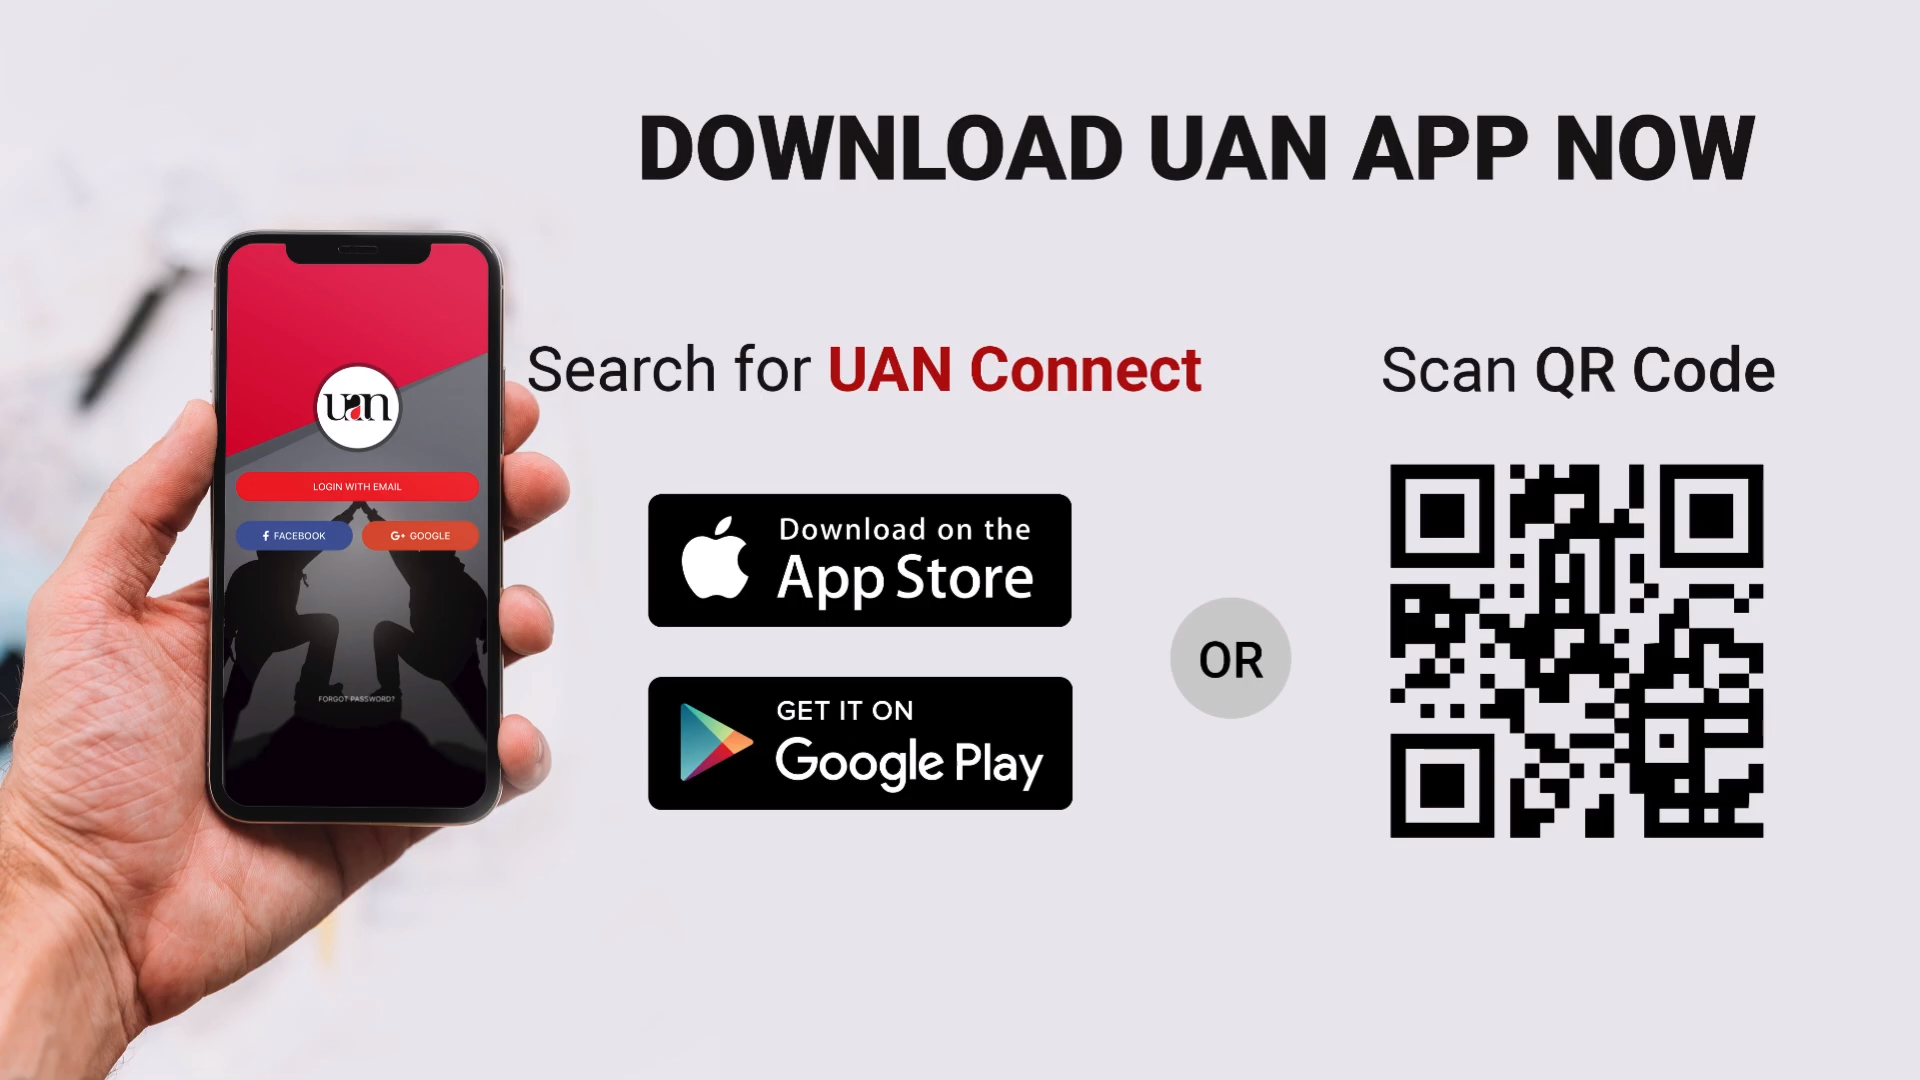 uan connect app